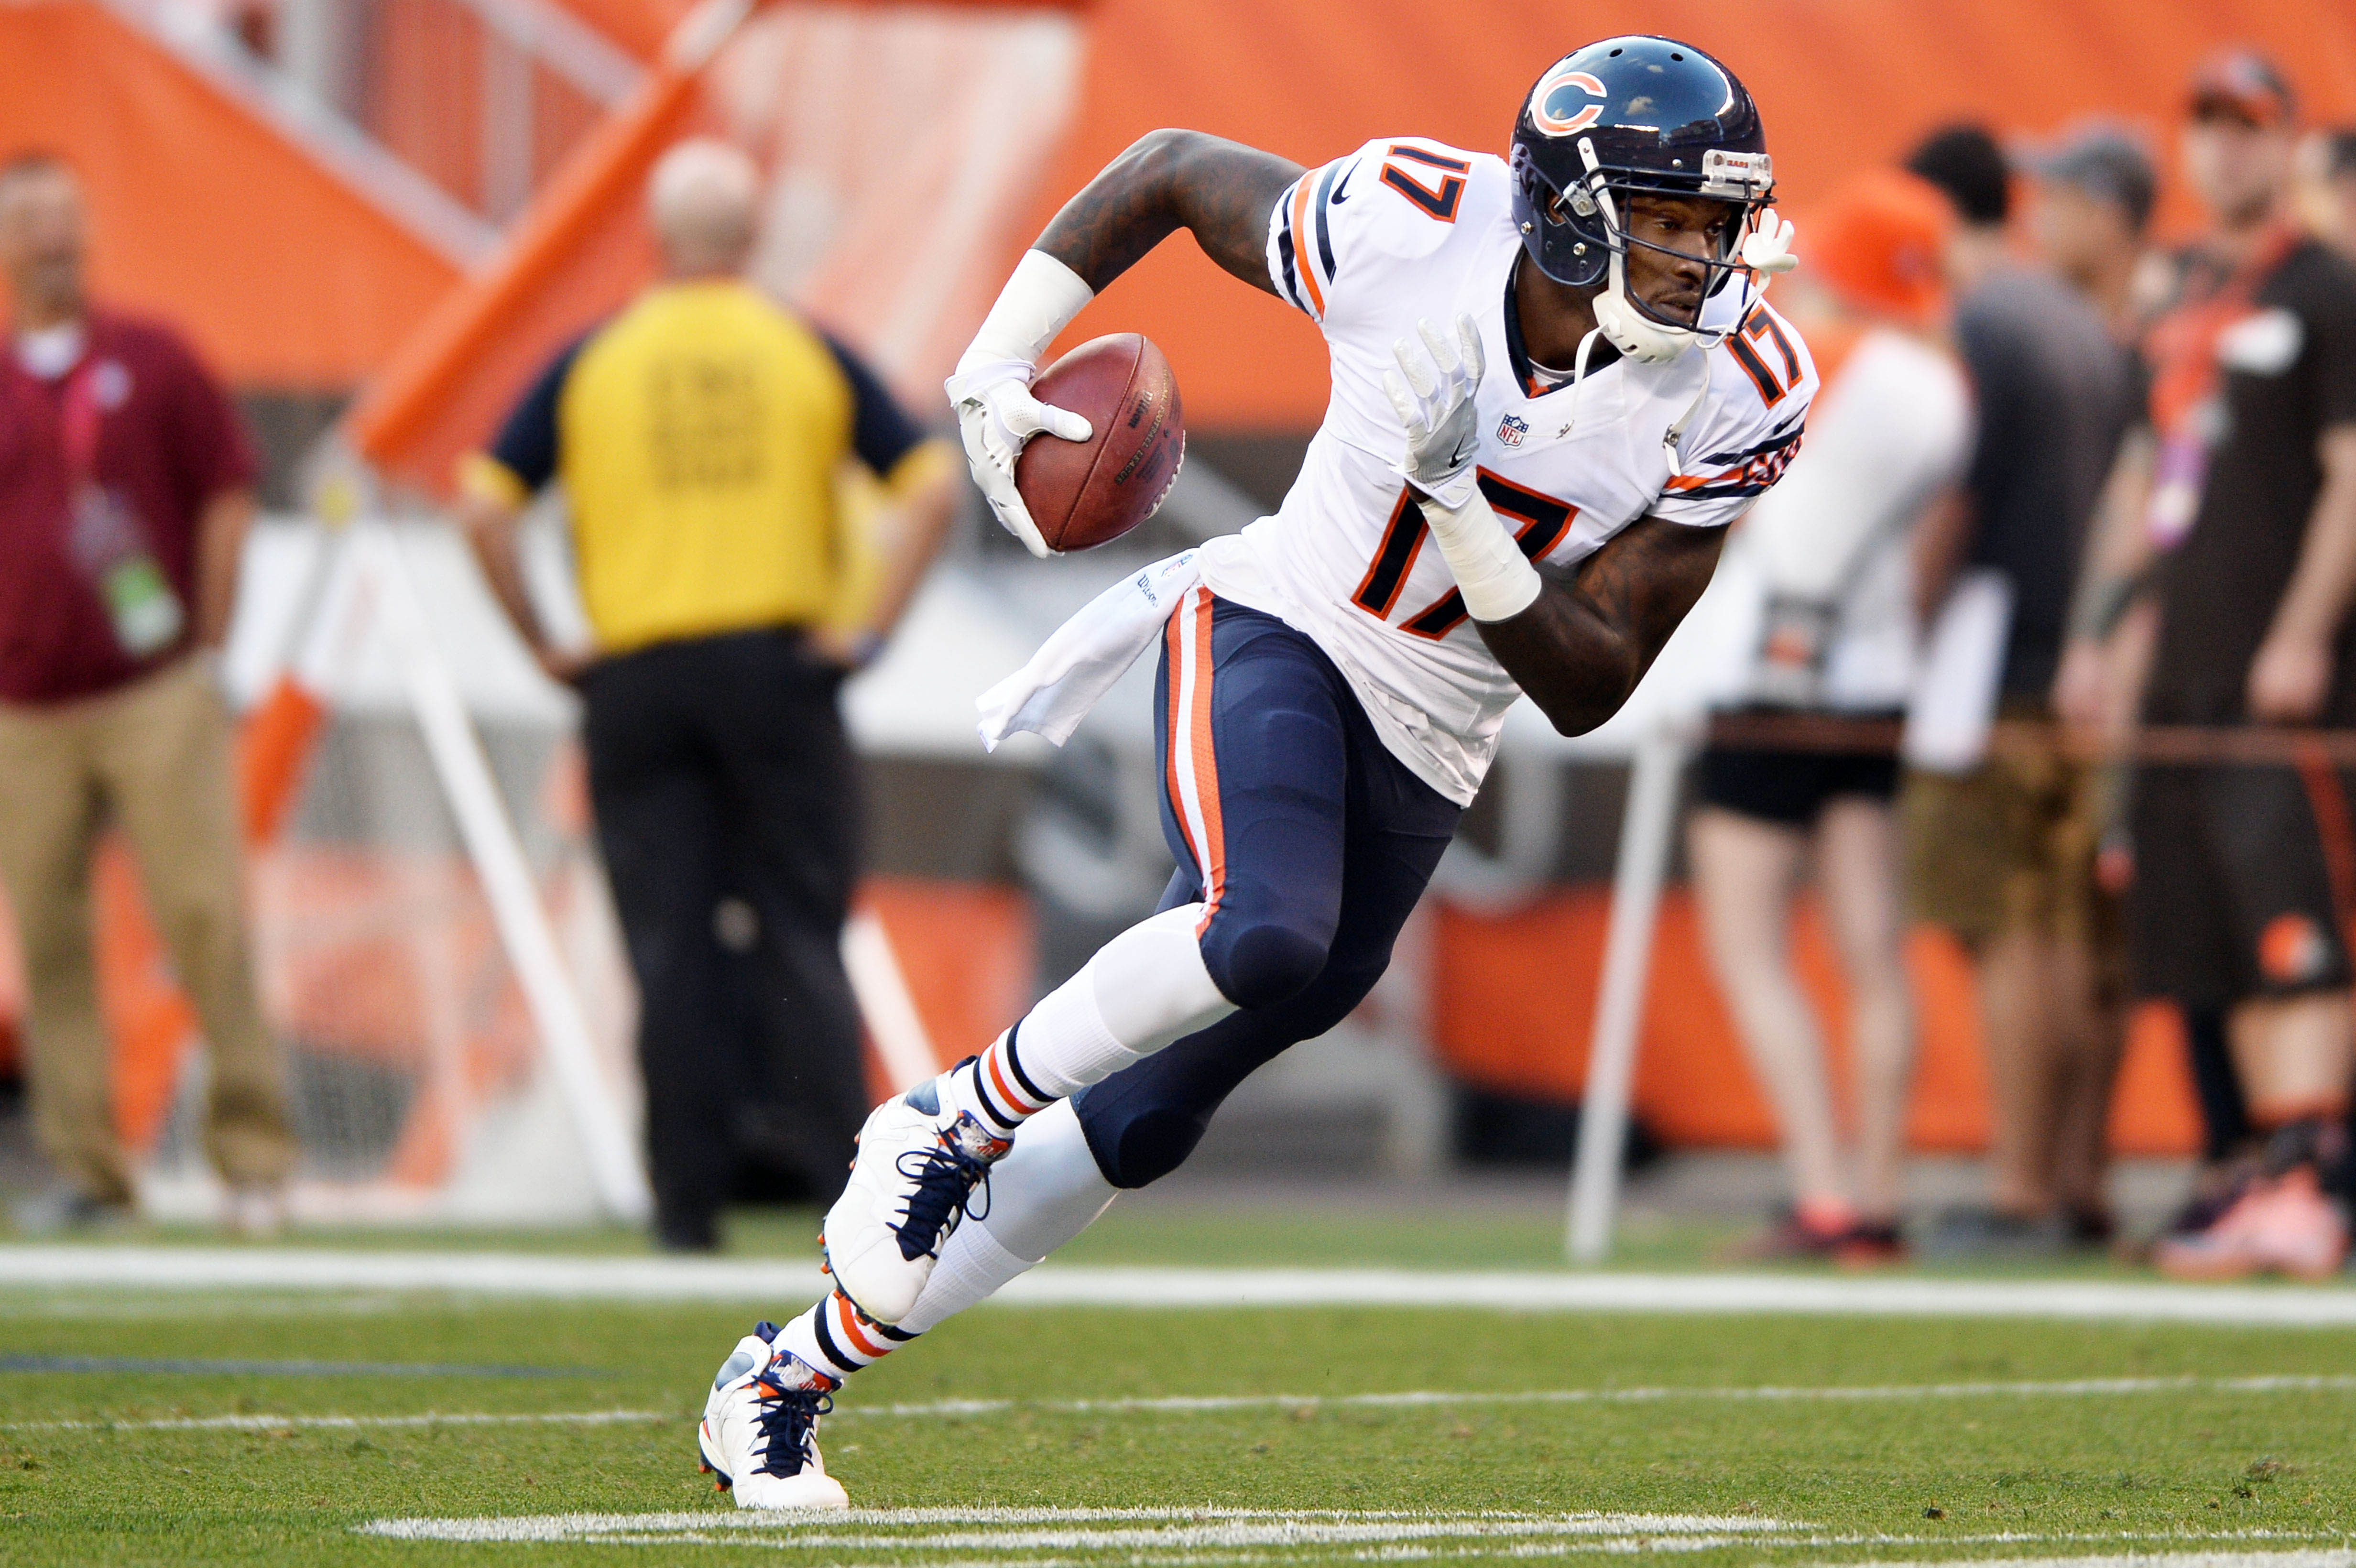 322d939f NFC North Bold Offseason Predictions: Alshon Jeffery not moving